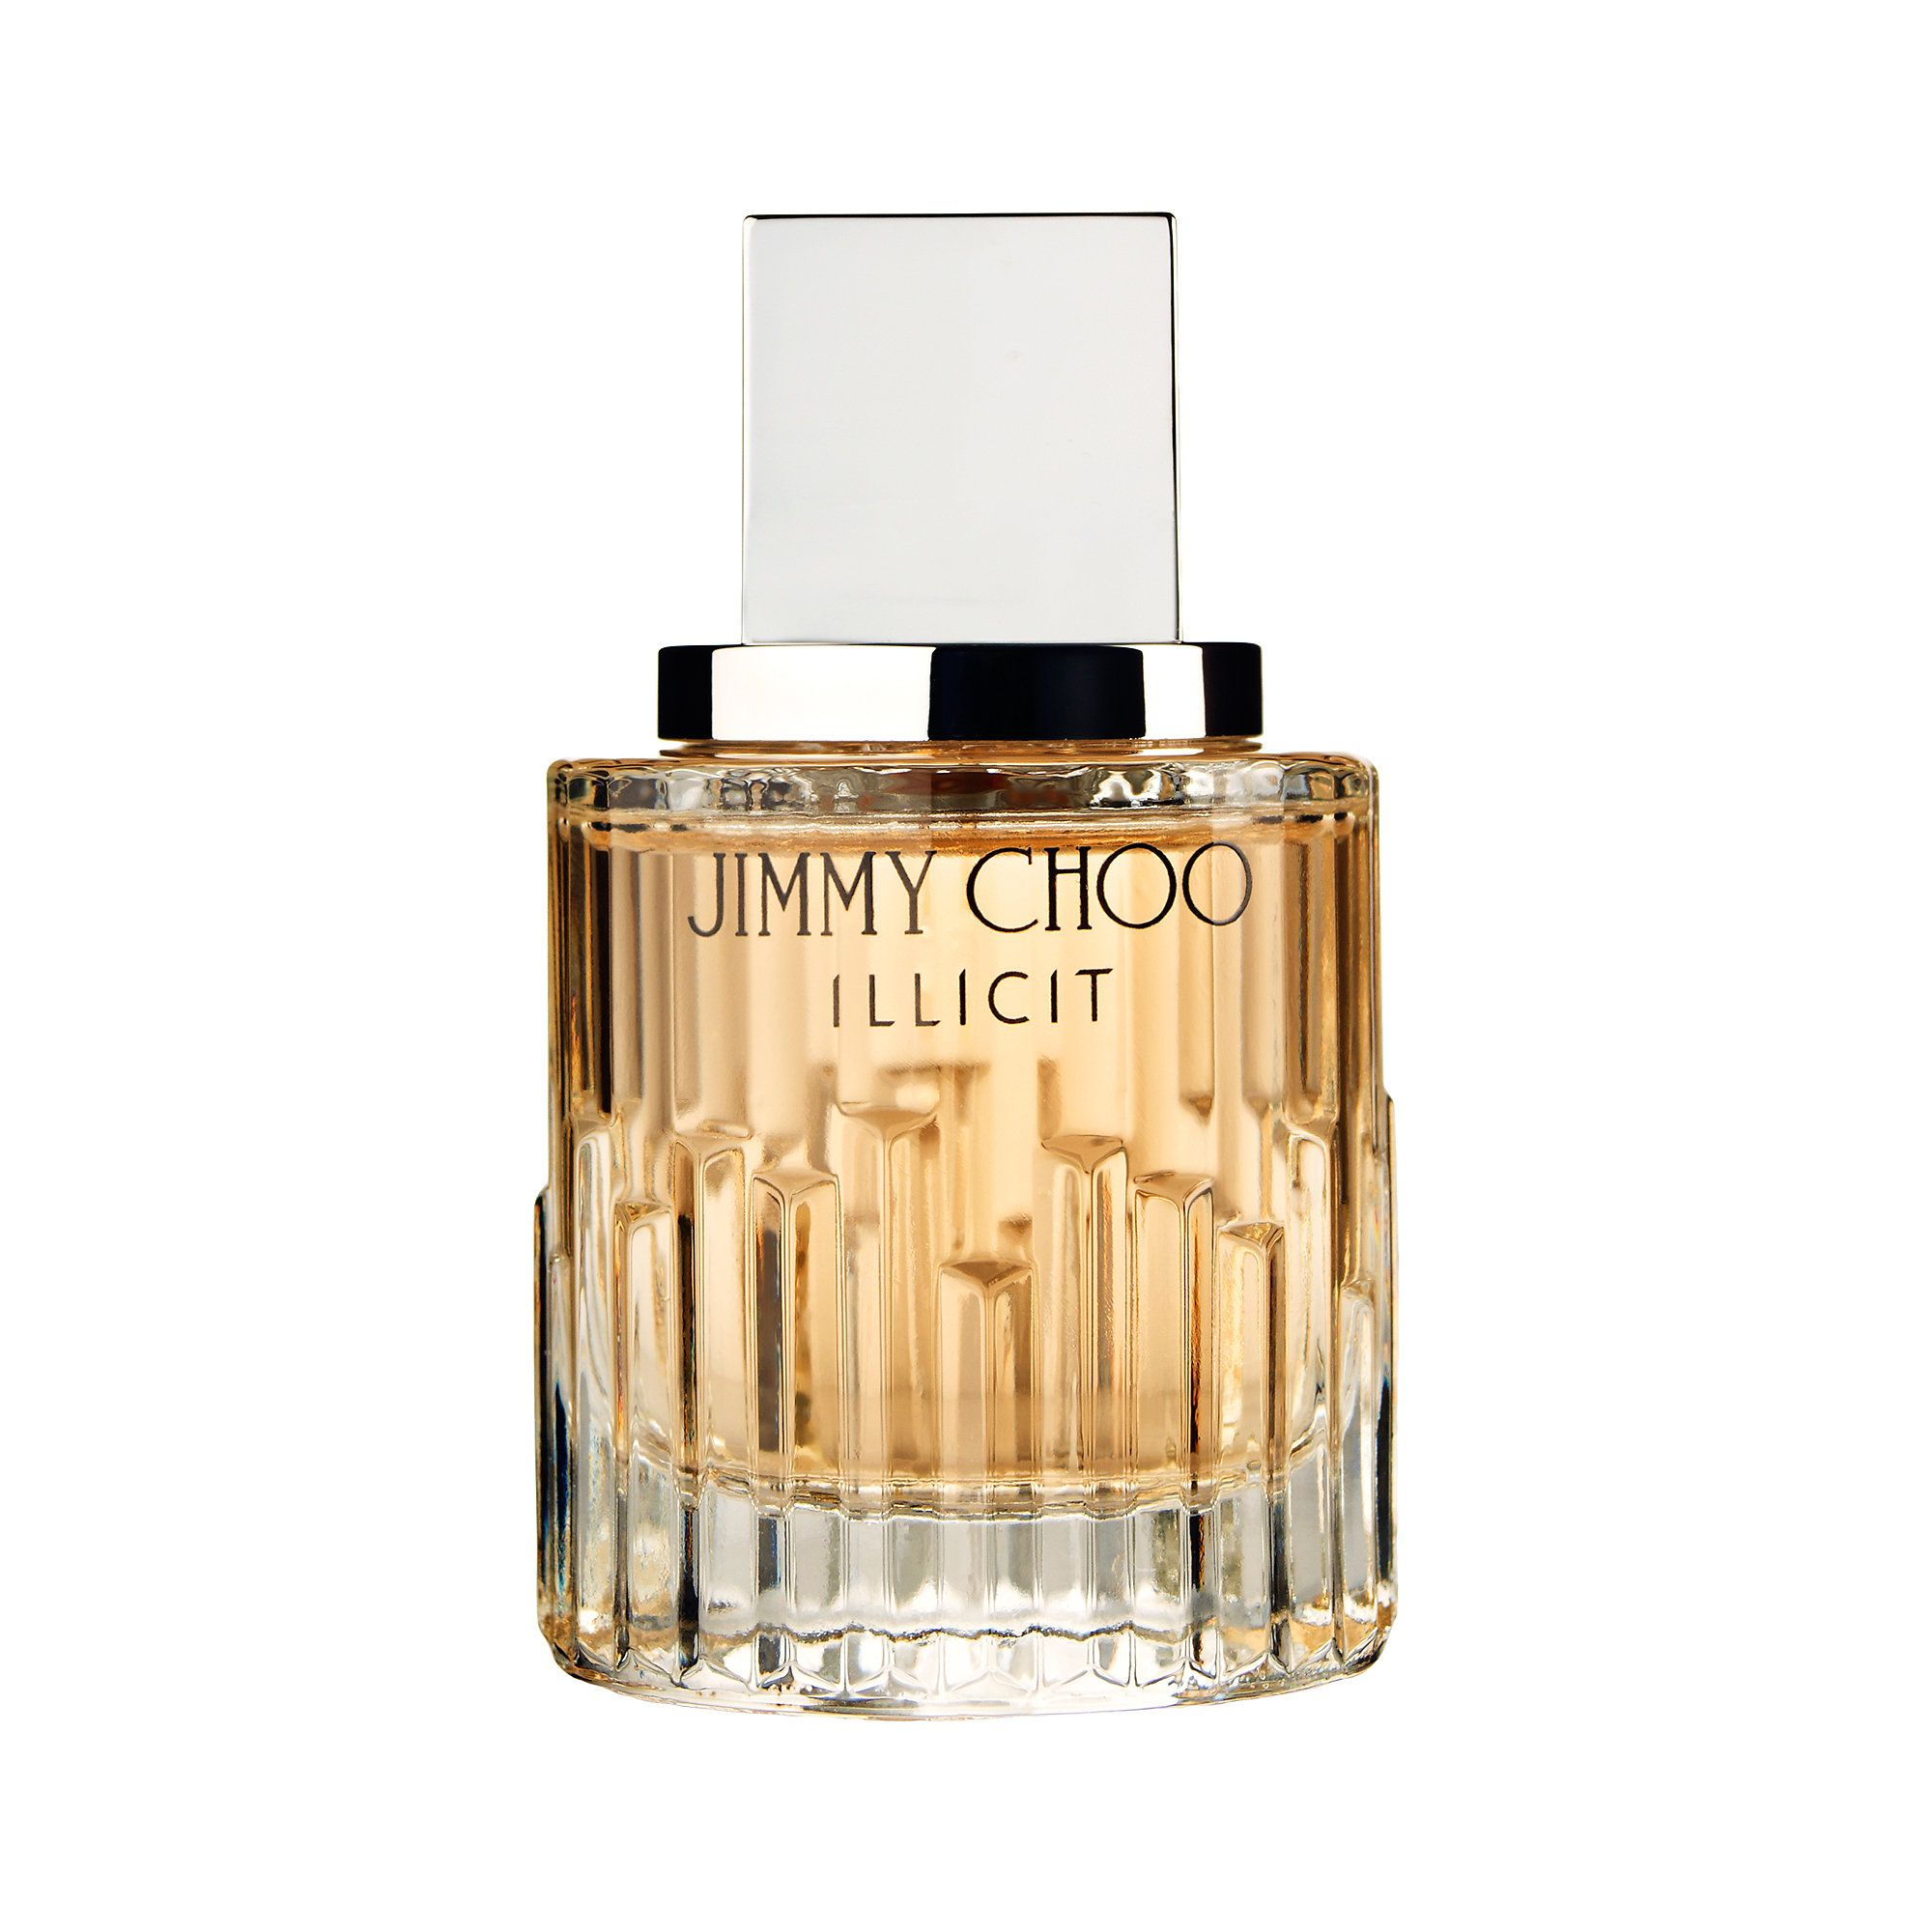 9b65ed8a50f Illicit by Jimmy Choo at Sephora